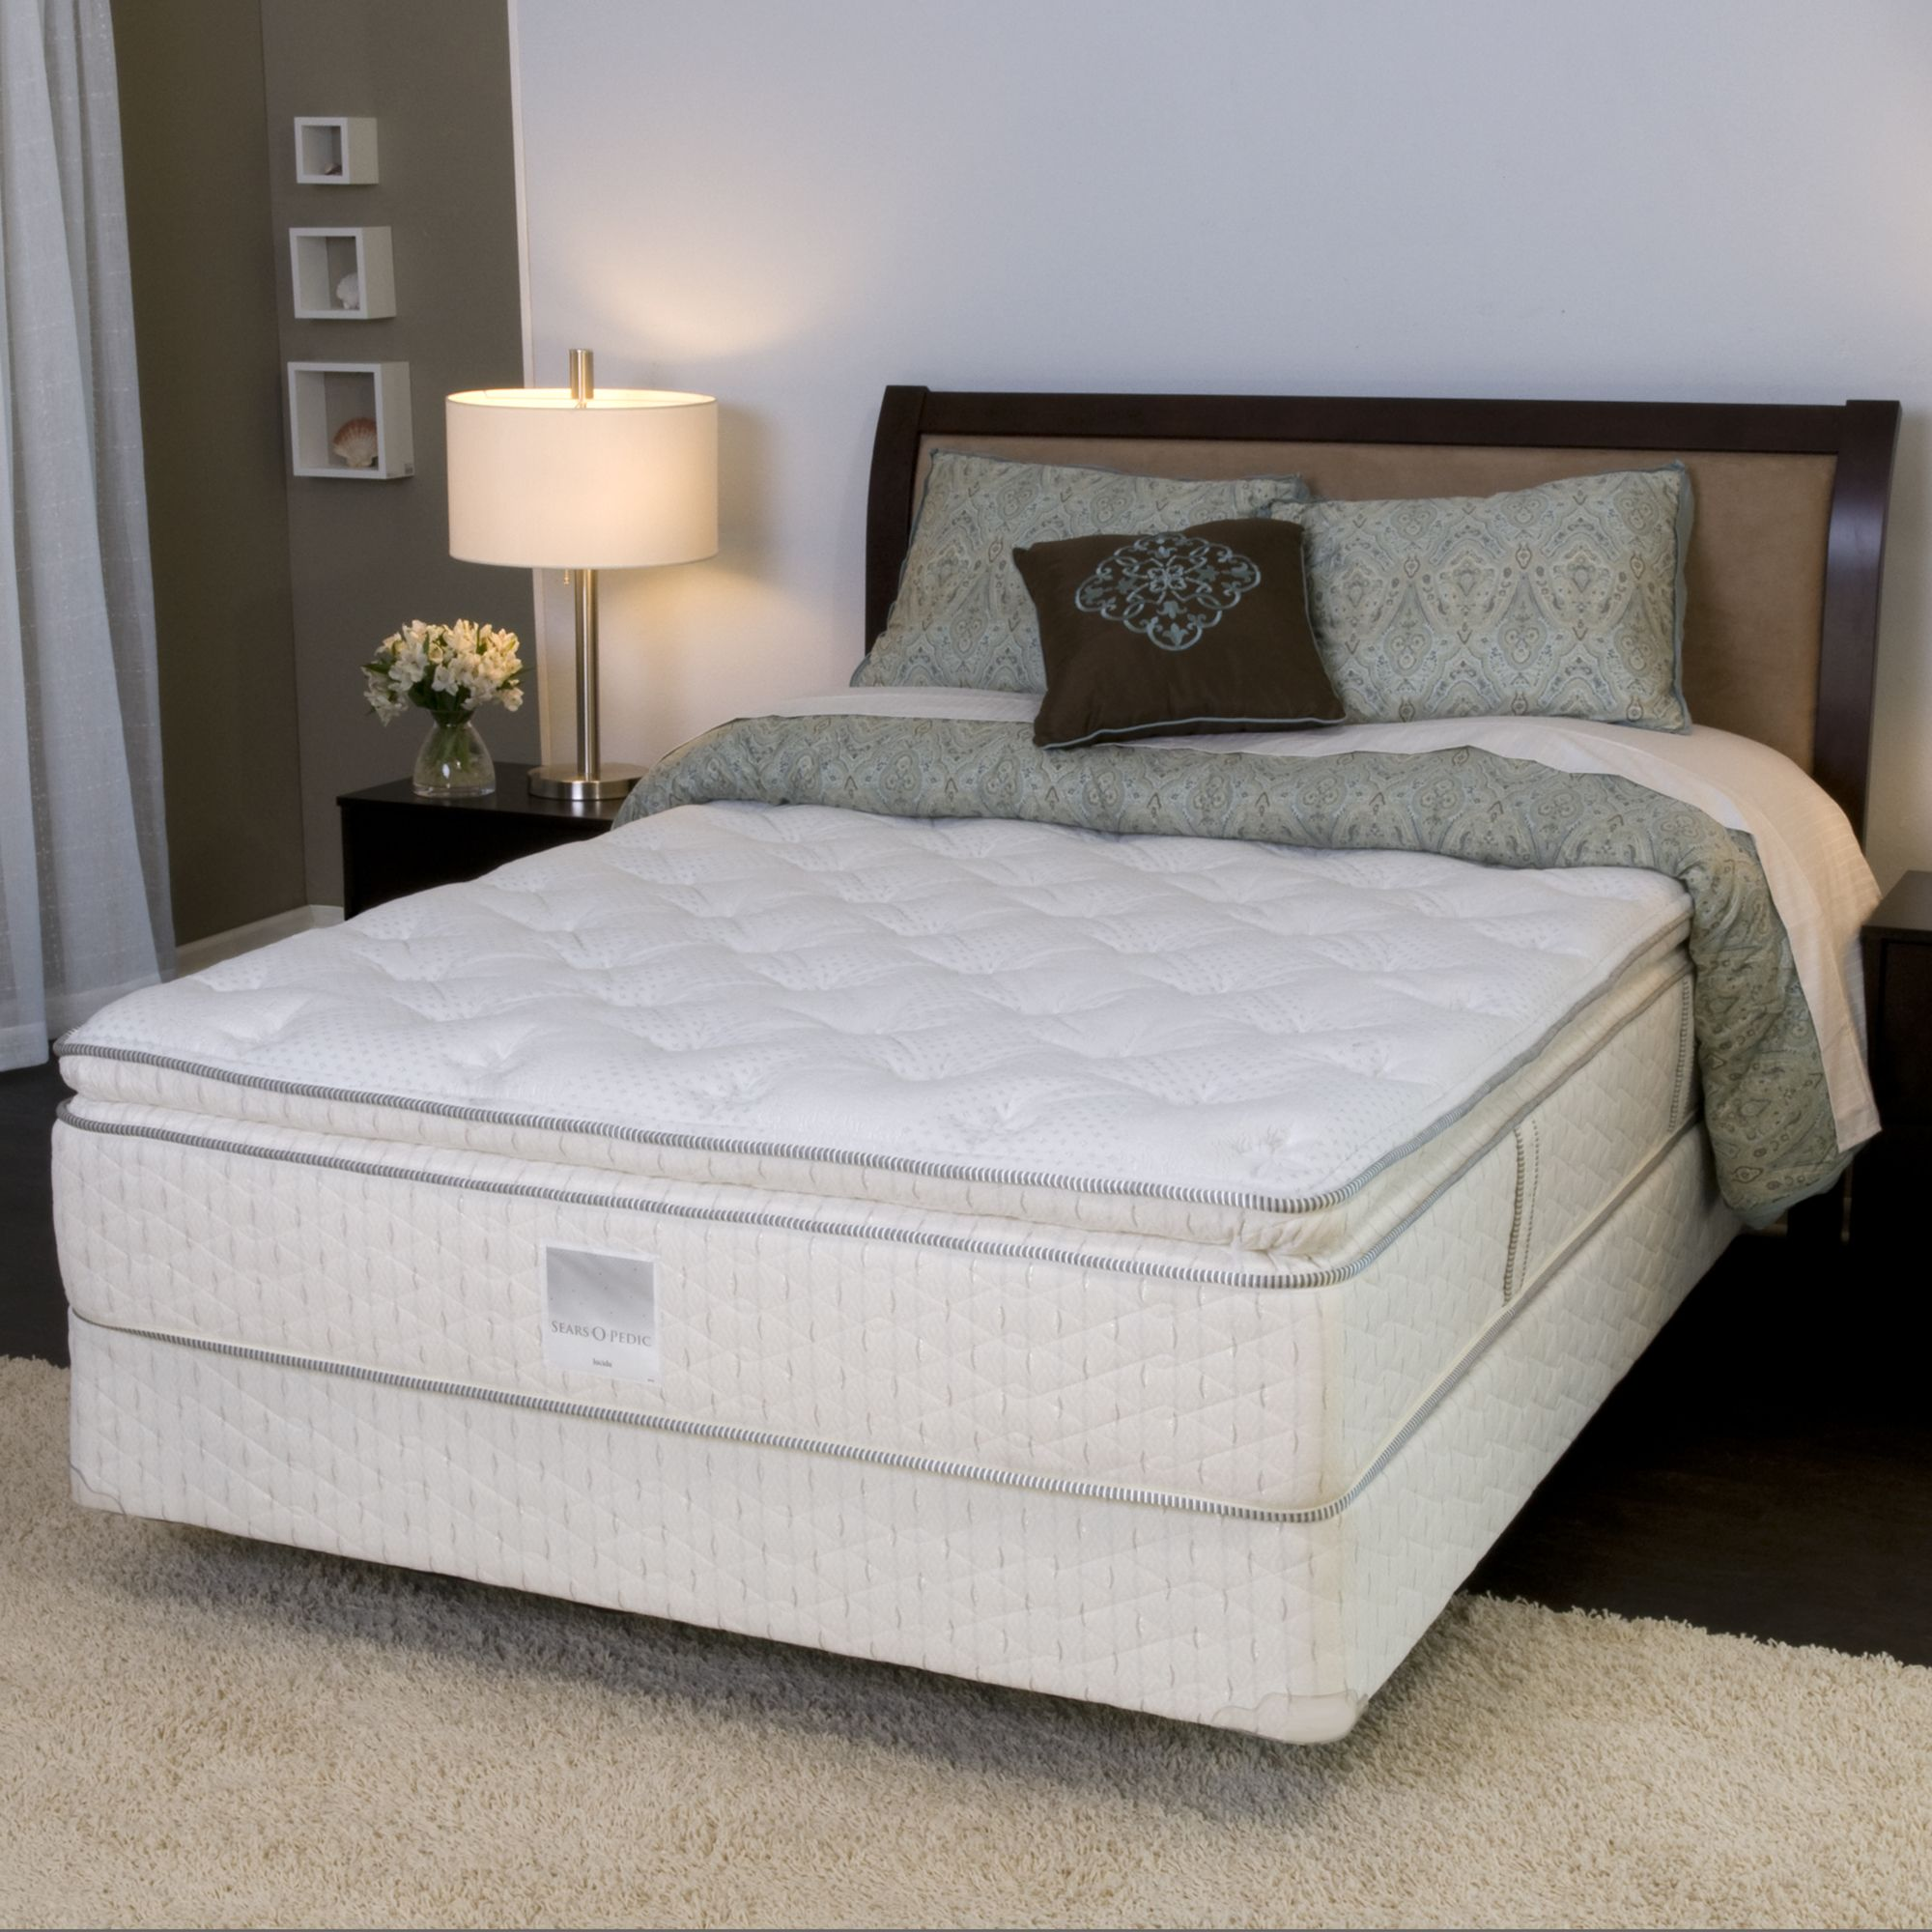 Mattress Firm Cincinnati Sears O Pedic 951063 350 Queen Mattress Firm Pillowtop Ii